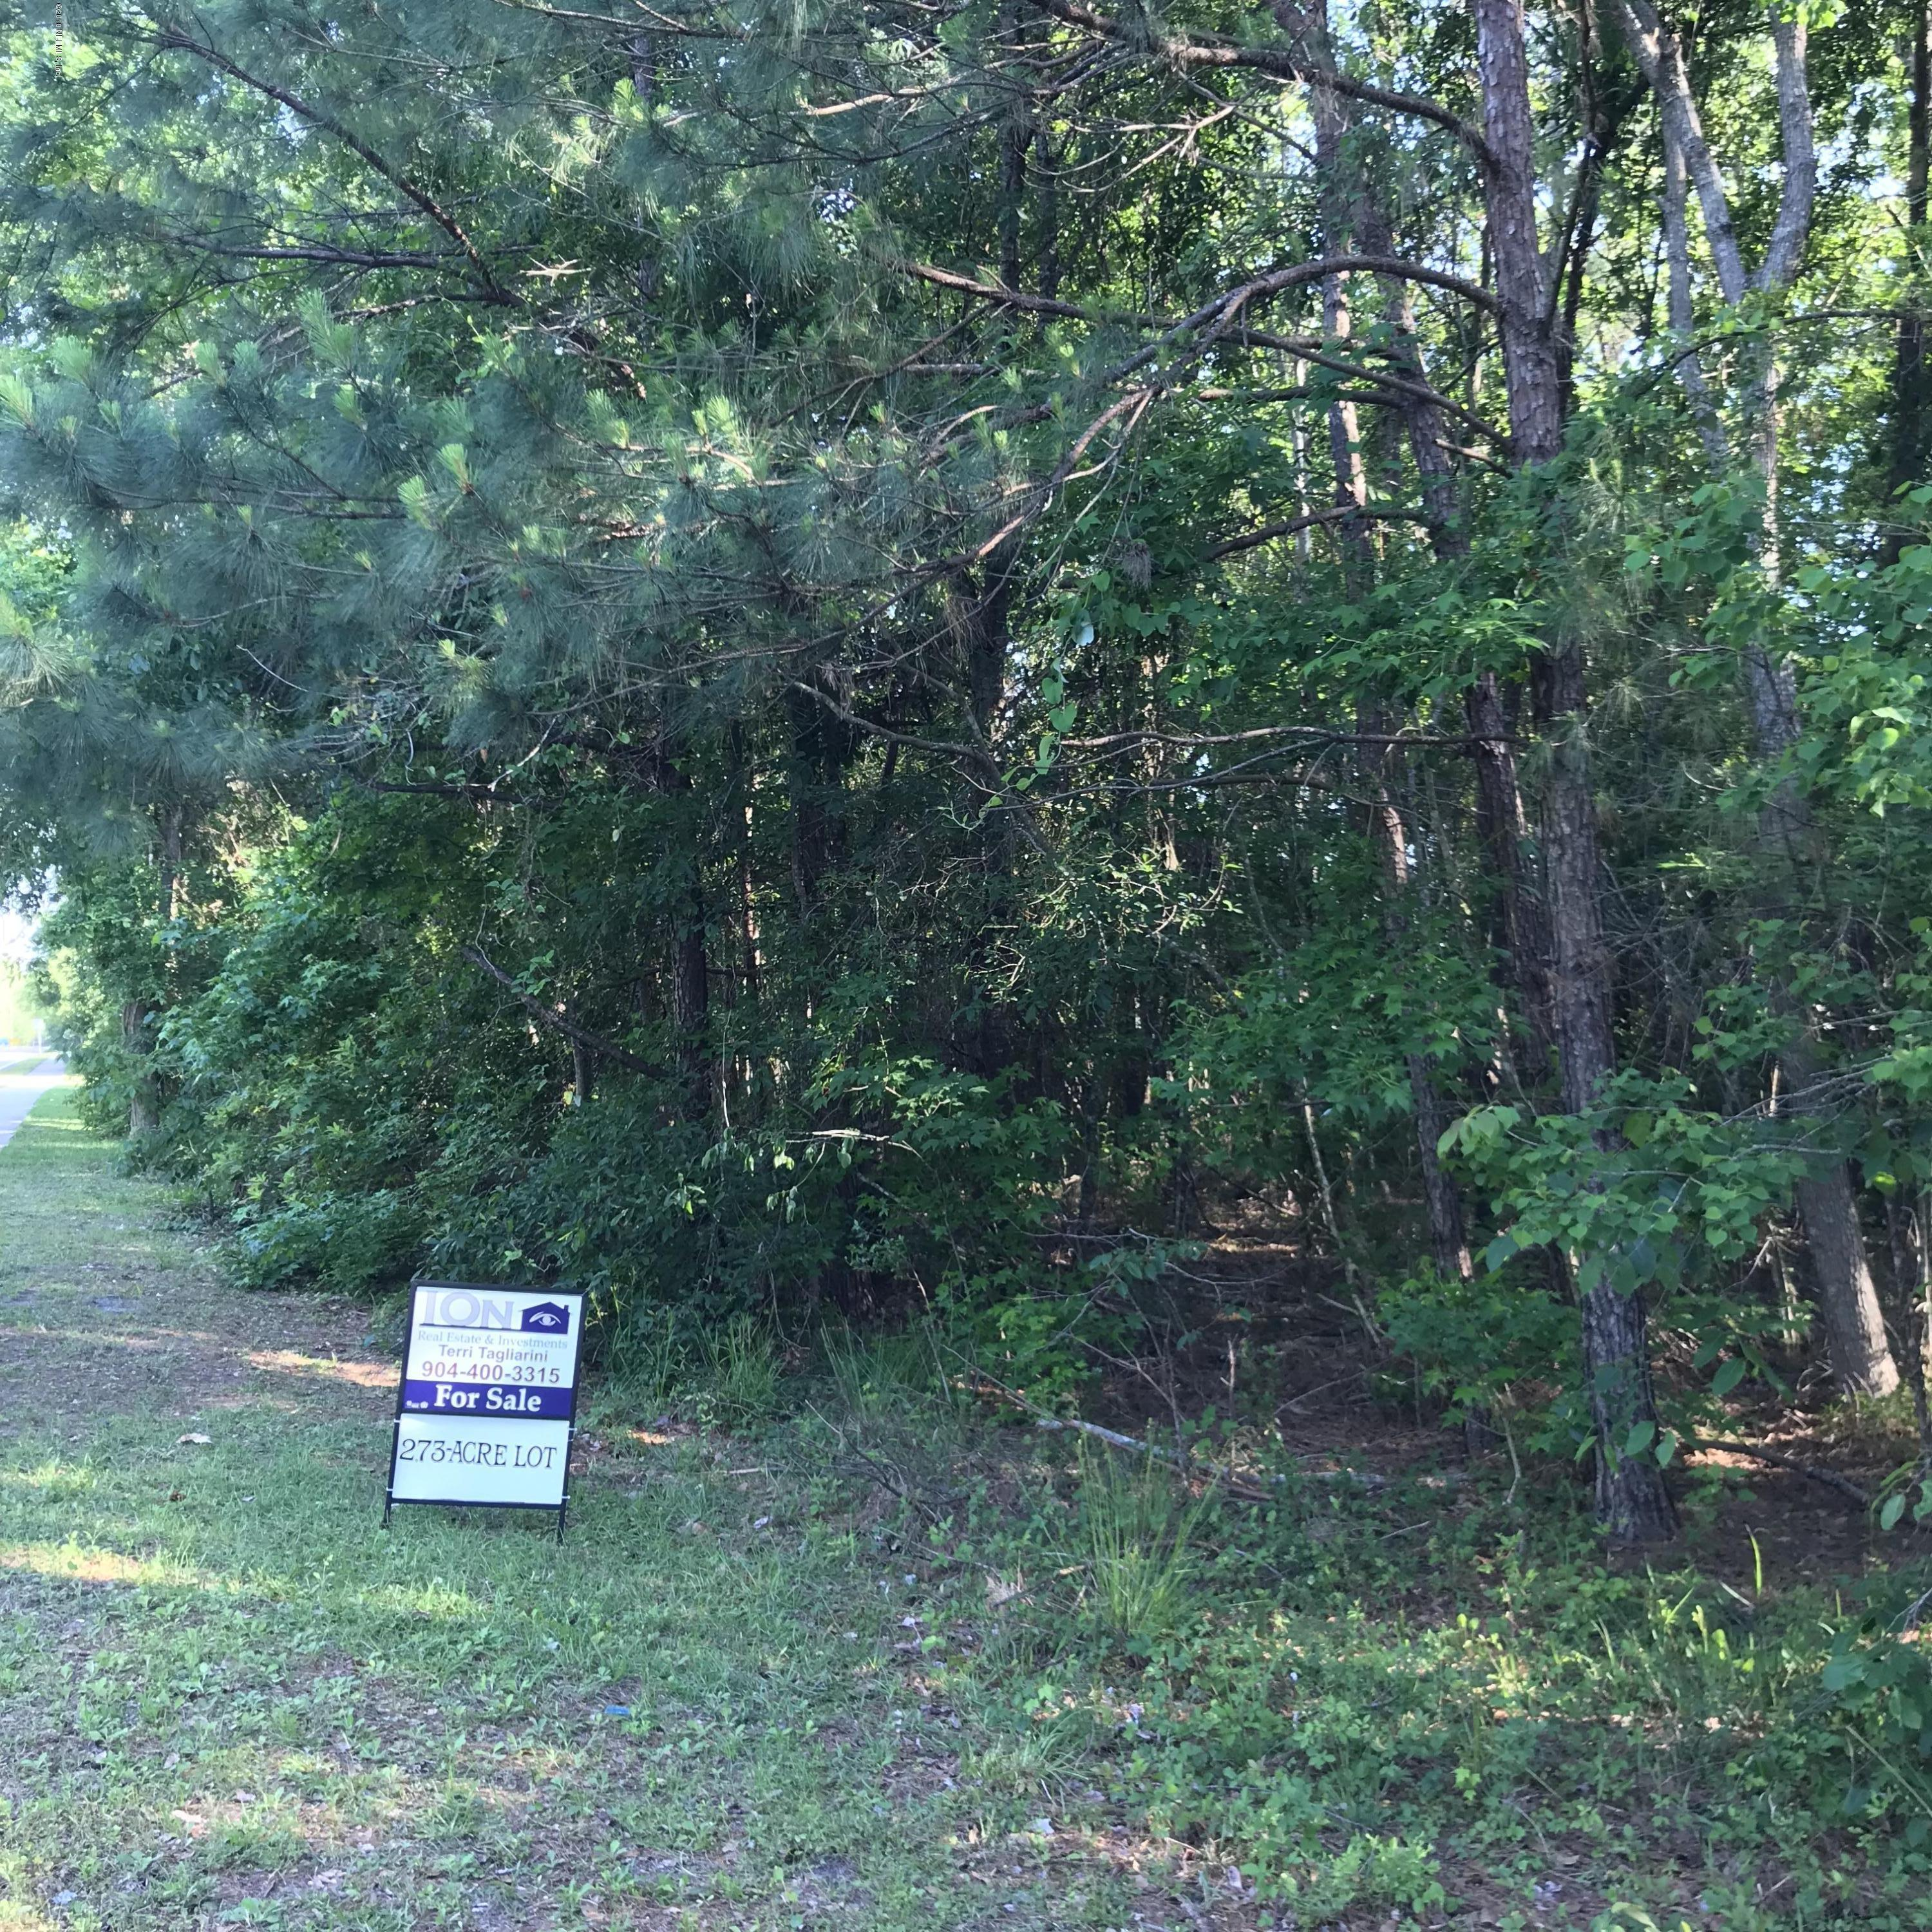 0 QUAIL ROOST, MIDDLEBURG, FLORIDA 32068, ,Vacant land,For sale,QUAIL ROOST,932121